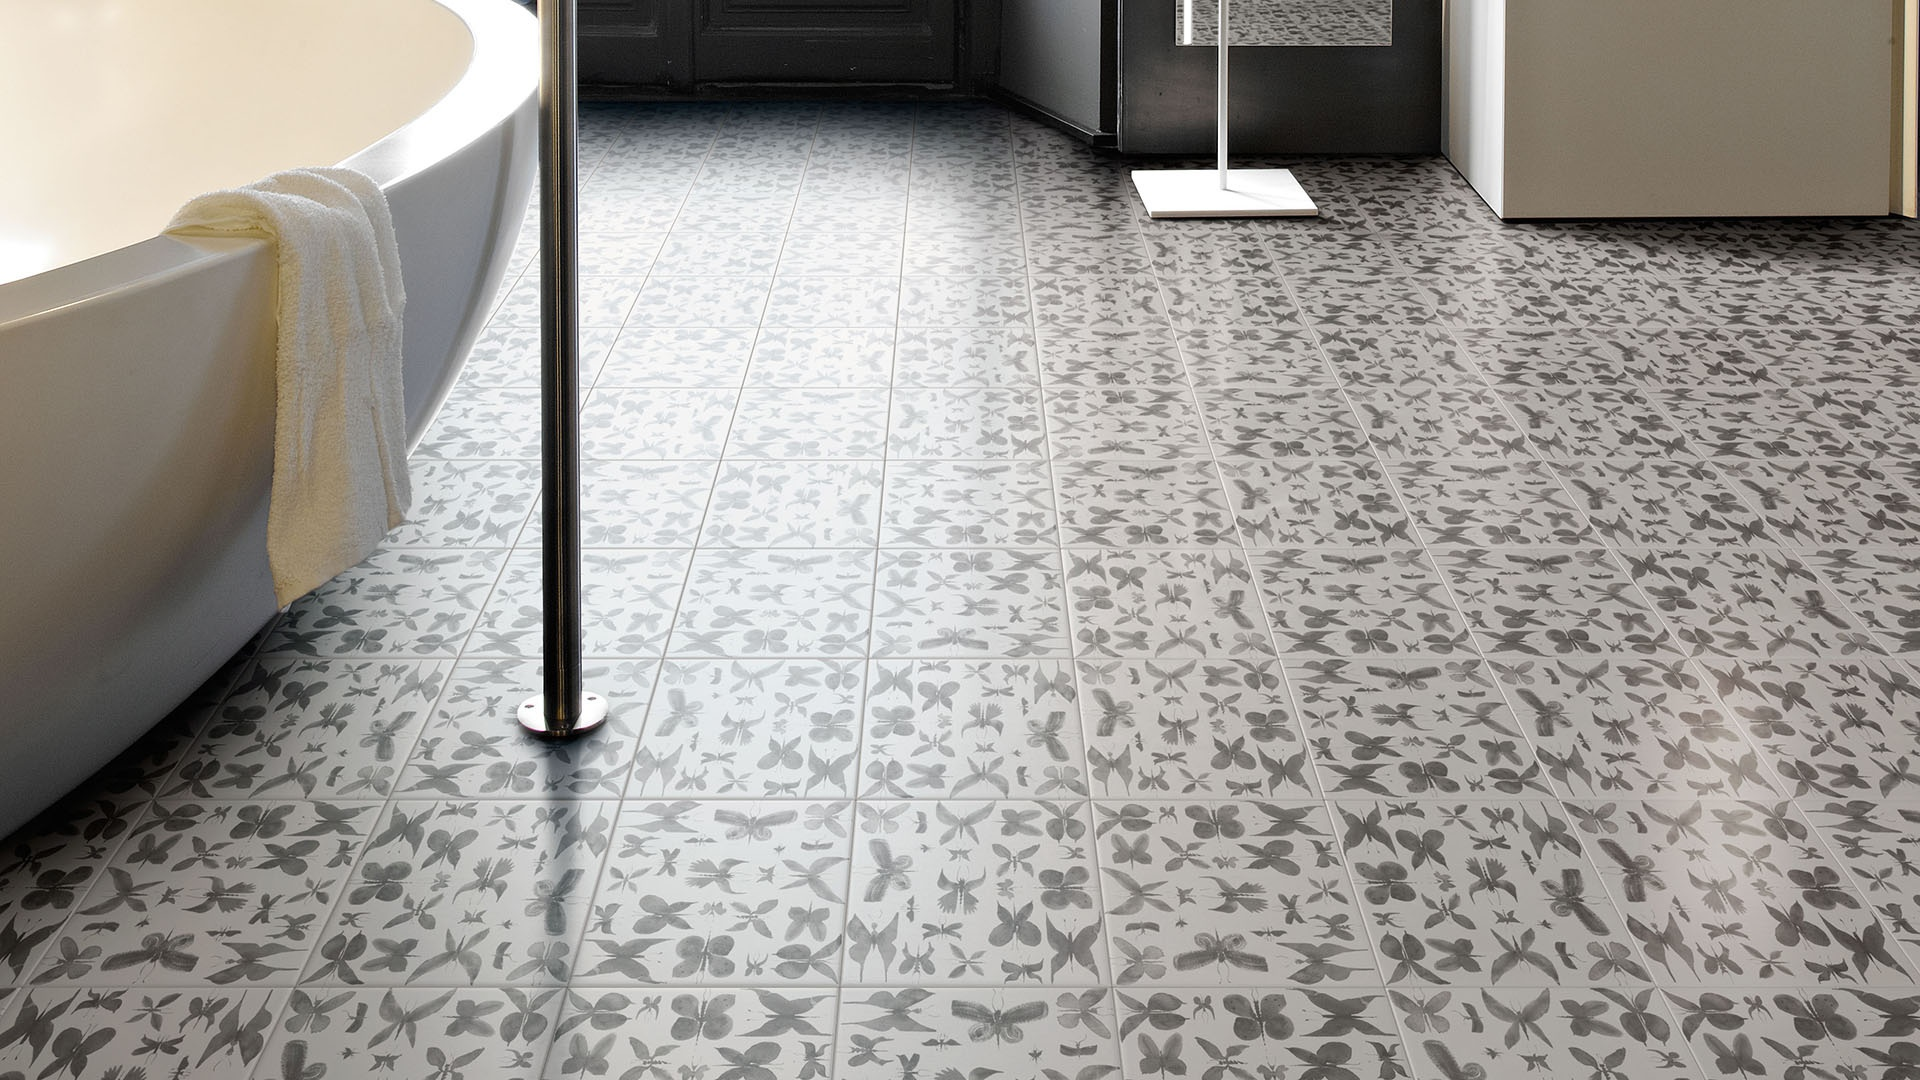 floor tile and wall tile We stock large selection of floor and wall tiles for residential and commercial application our offerings cater to all budgets and include variety of price ranges we source latest tile trends for all your design needs to learn more stop by our showroom today.